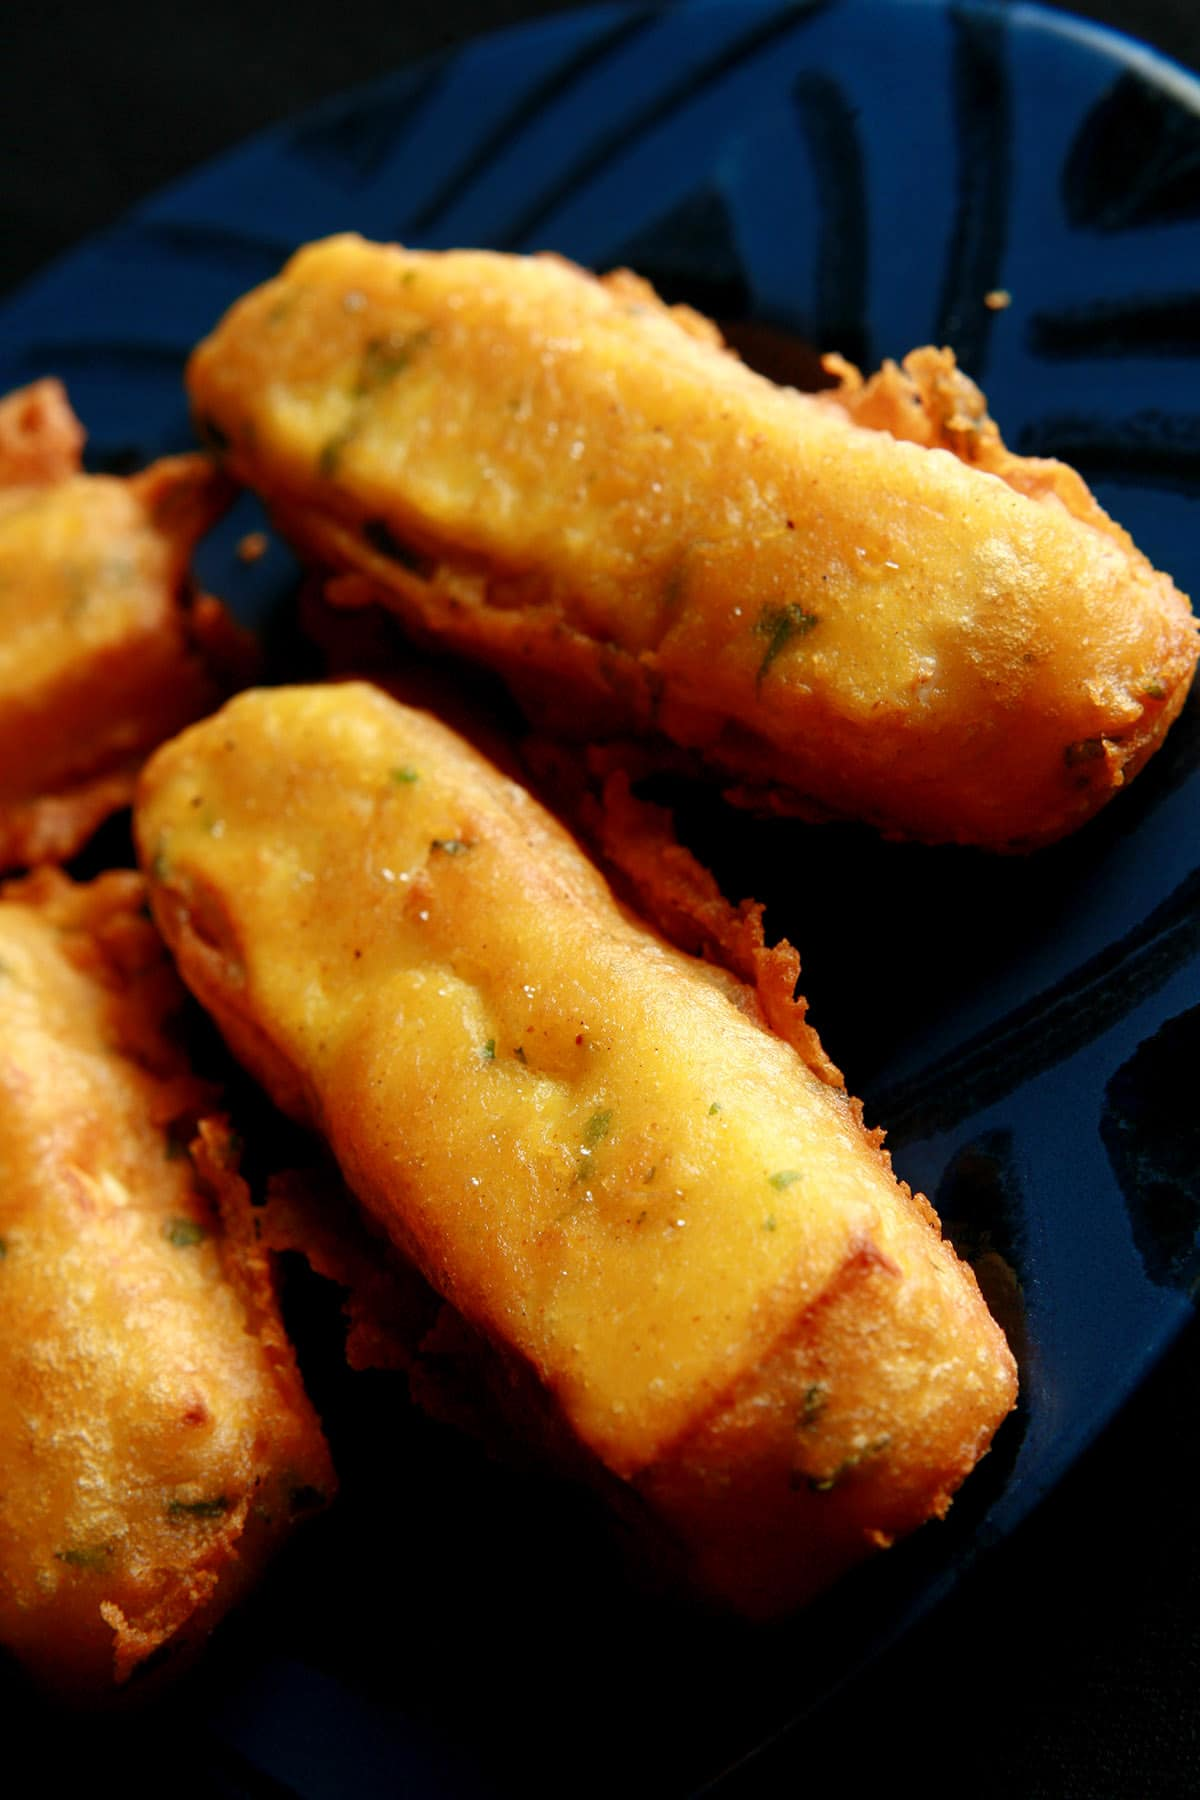 A close up view of several sticks of paneer pakora - Indian fried cheese sticks. Bits of cilantro are visible in the golden yellow batter.